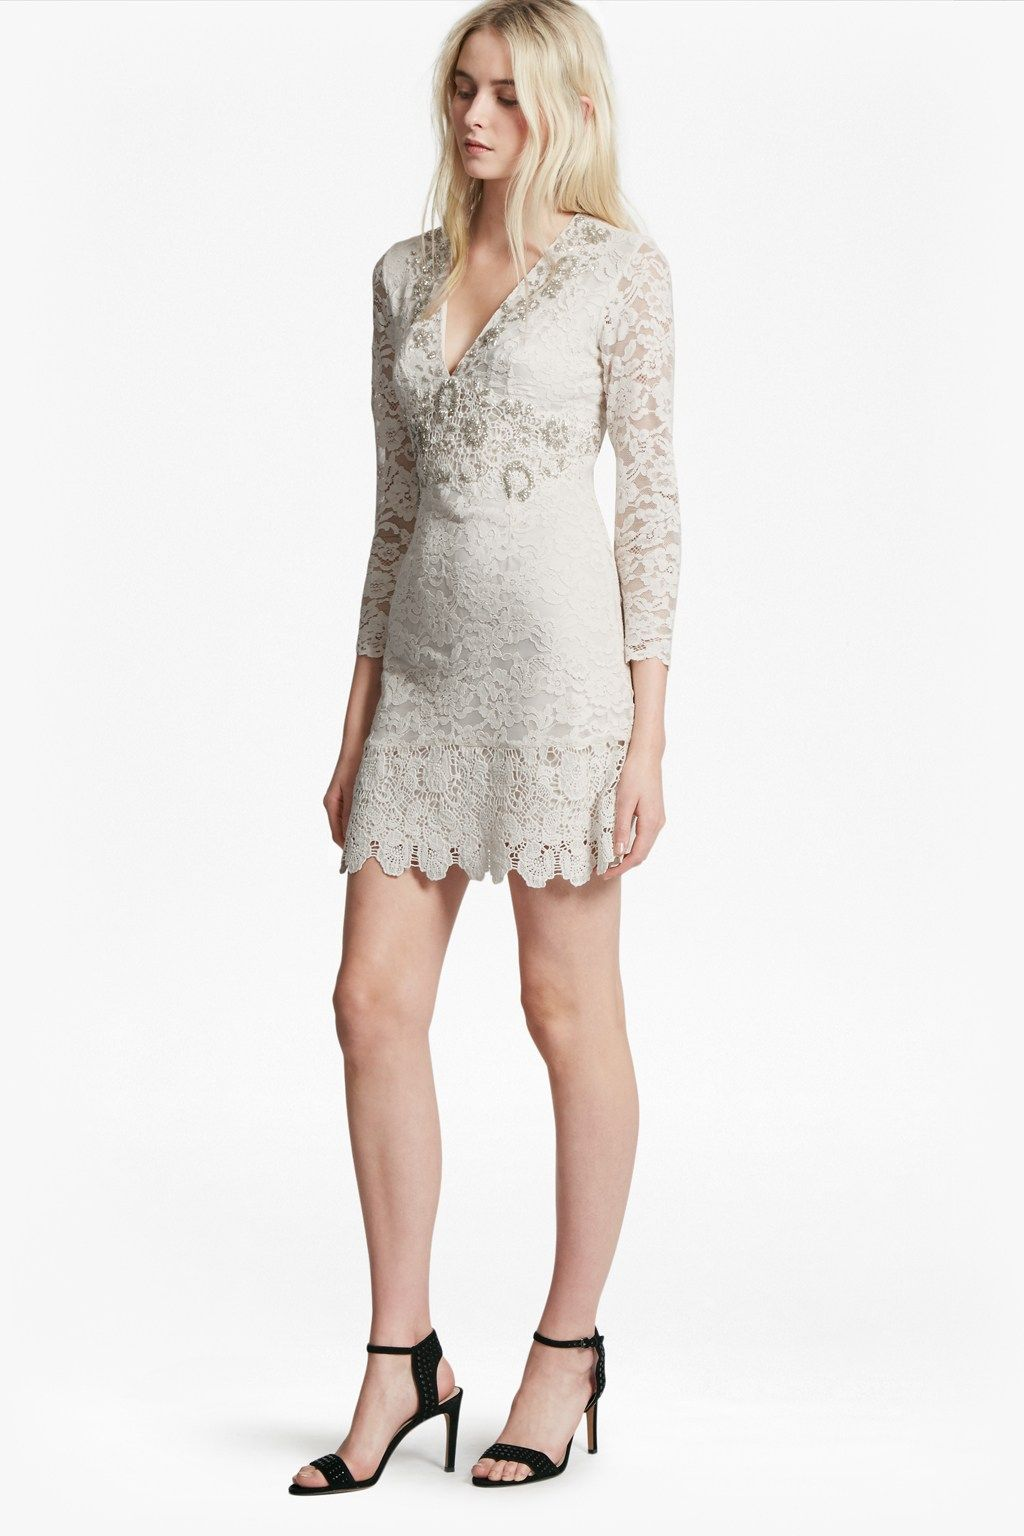 Emmie Lace Embellished Dress   SALE   French Connection Canada